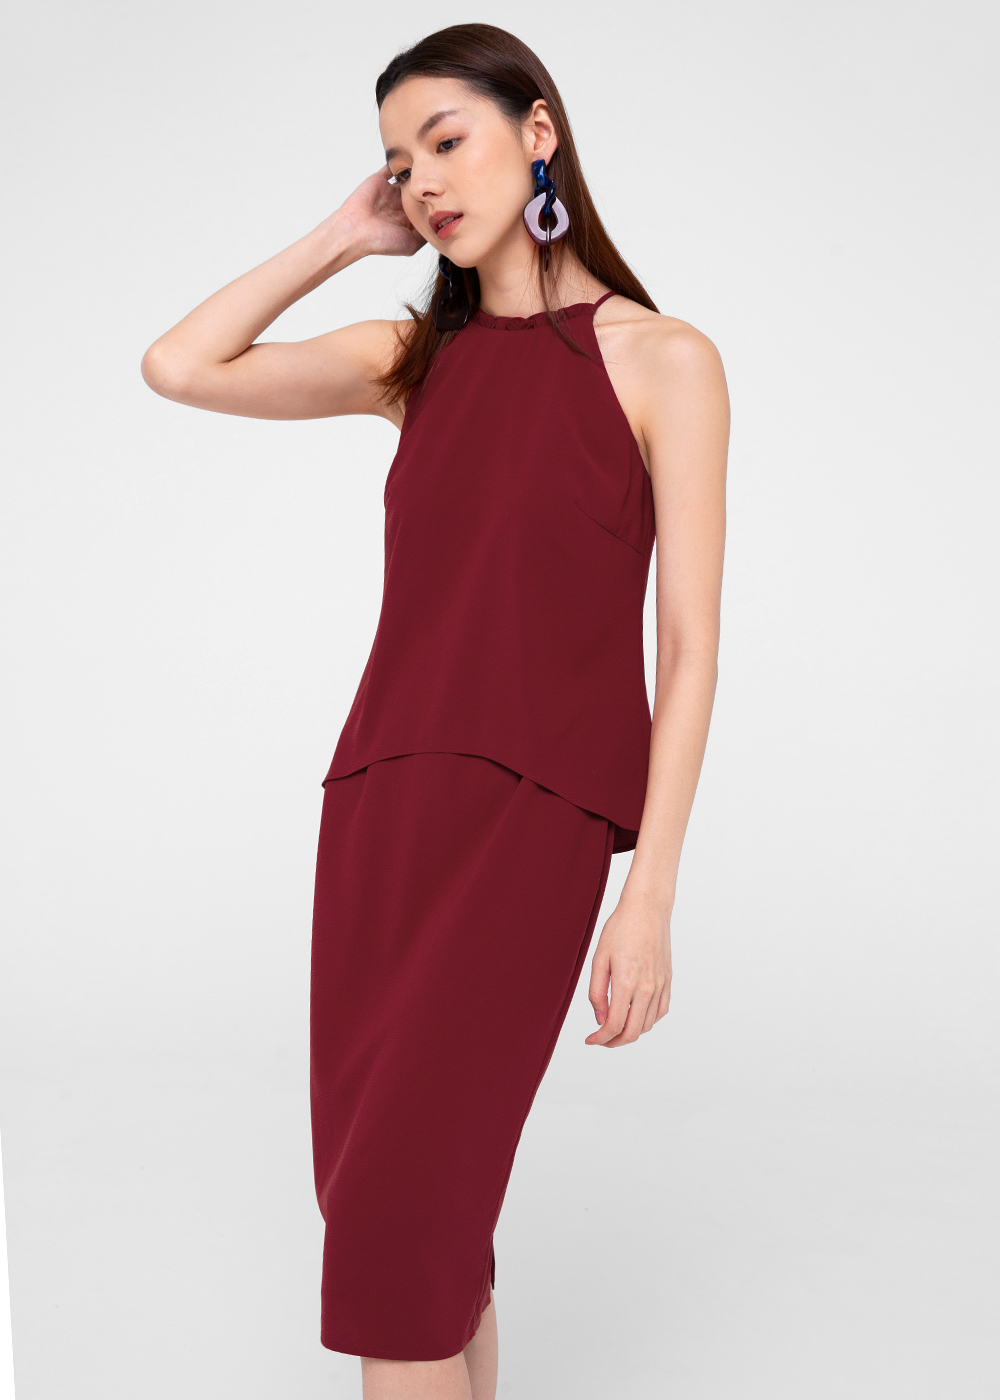 Naveah Layered Pencil Dress